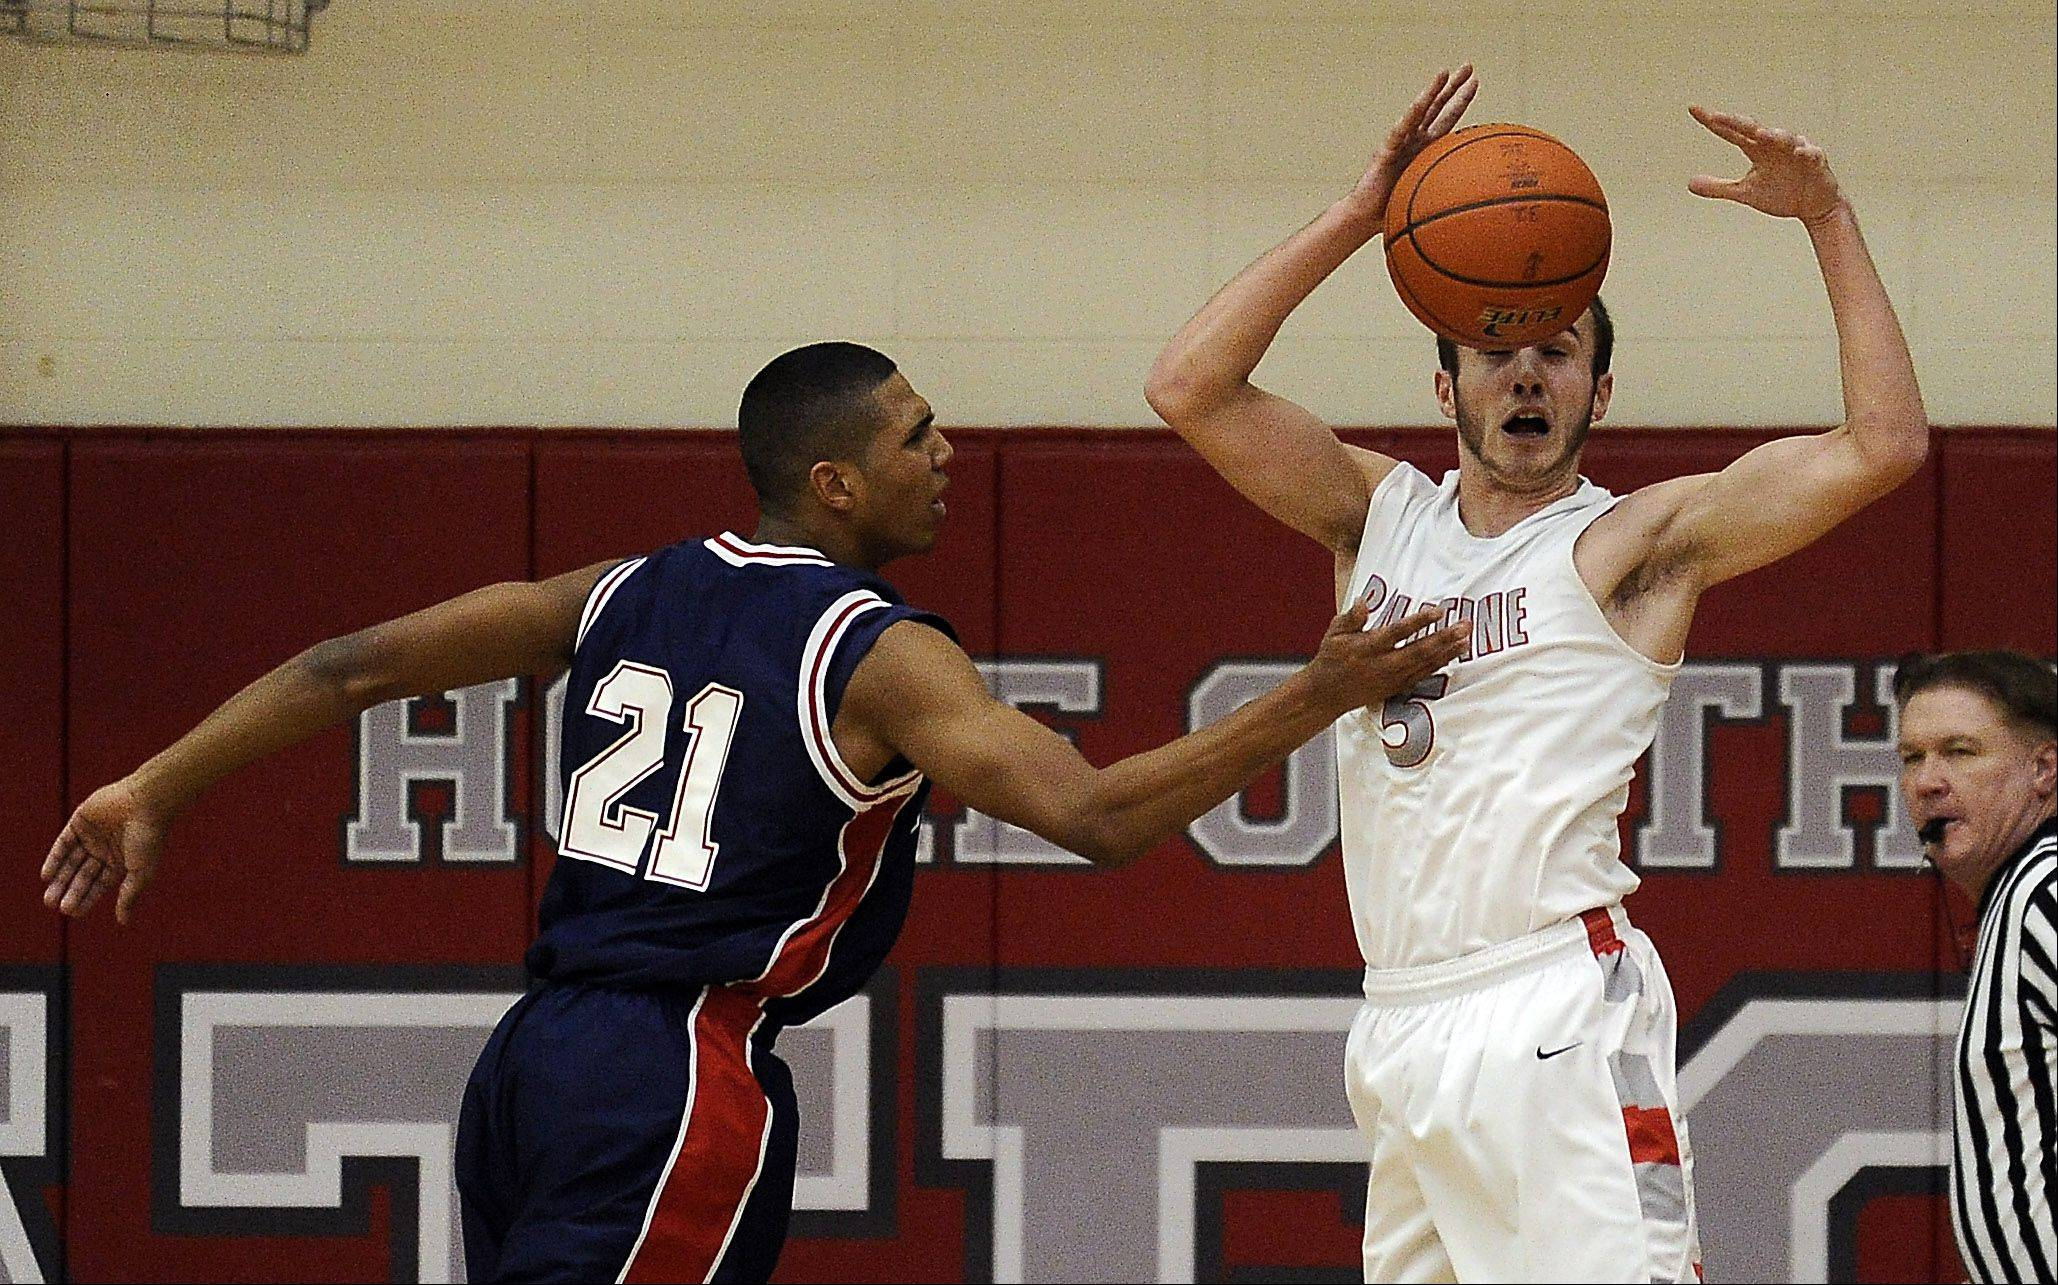 Palatine's Chris Macahon tries to control the ball and keep it away from Conant's D'Angelo McBride in the first half of boys varsity basketball at Palatine High School on Thursday.